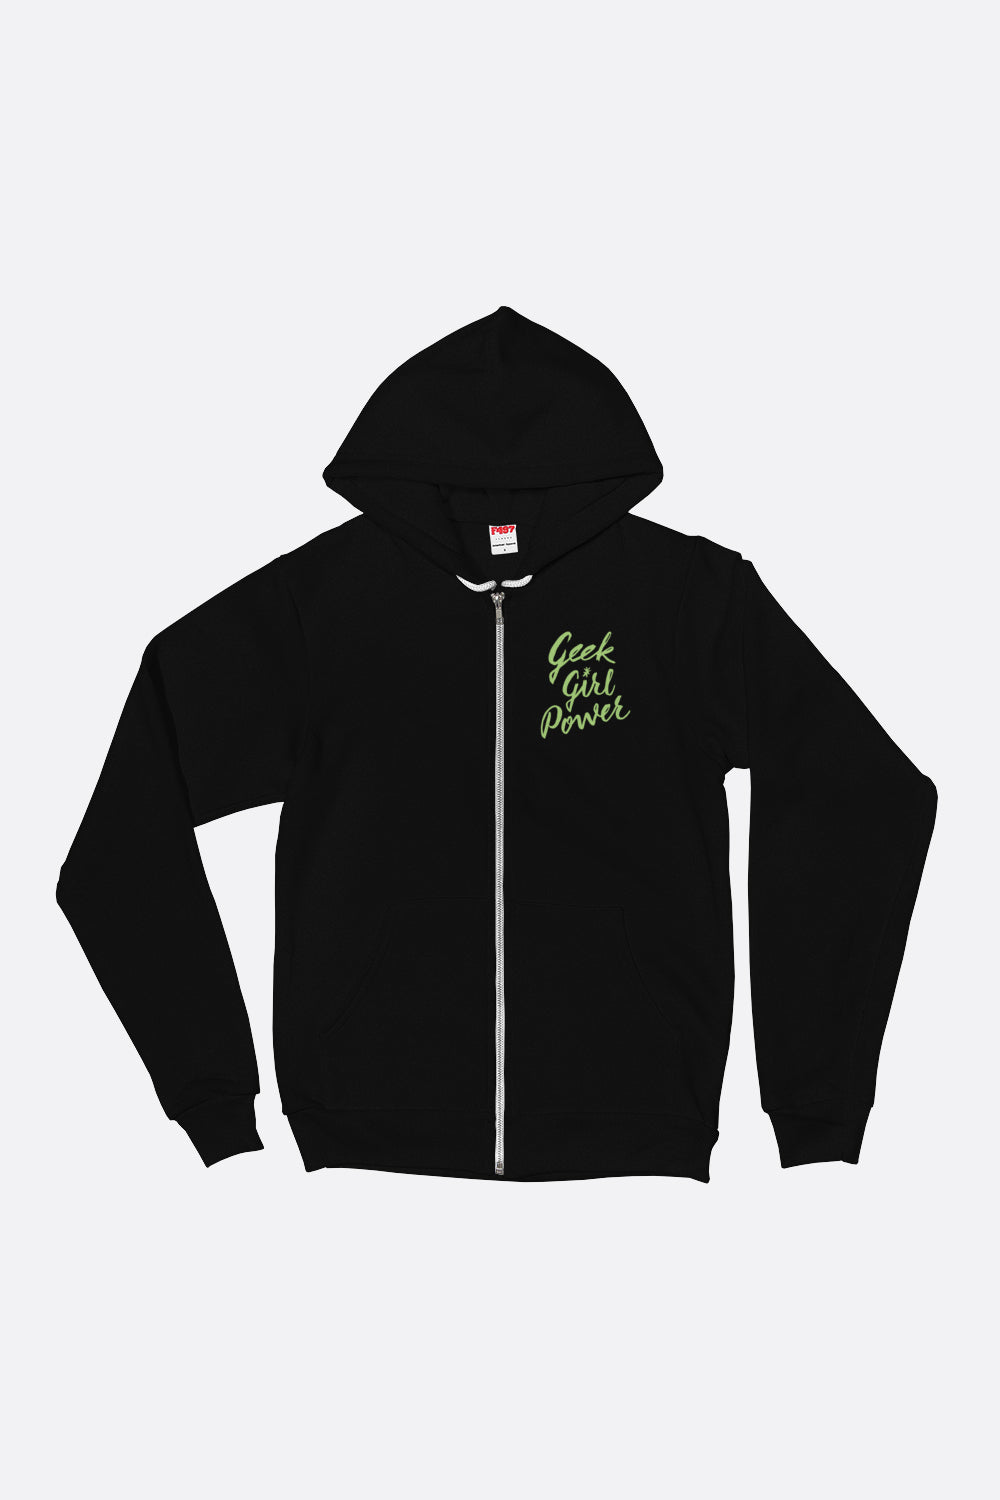 Geek Girl Power Zip Up Hoodie